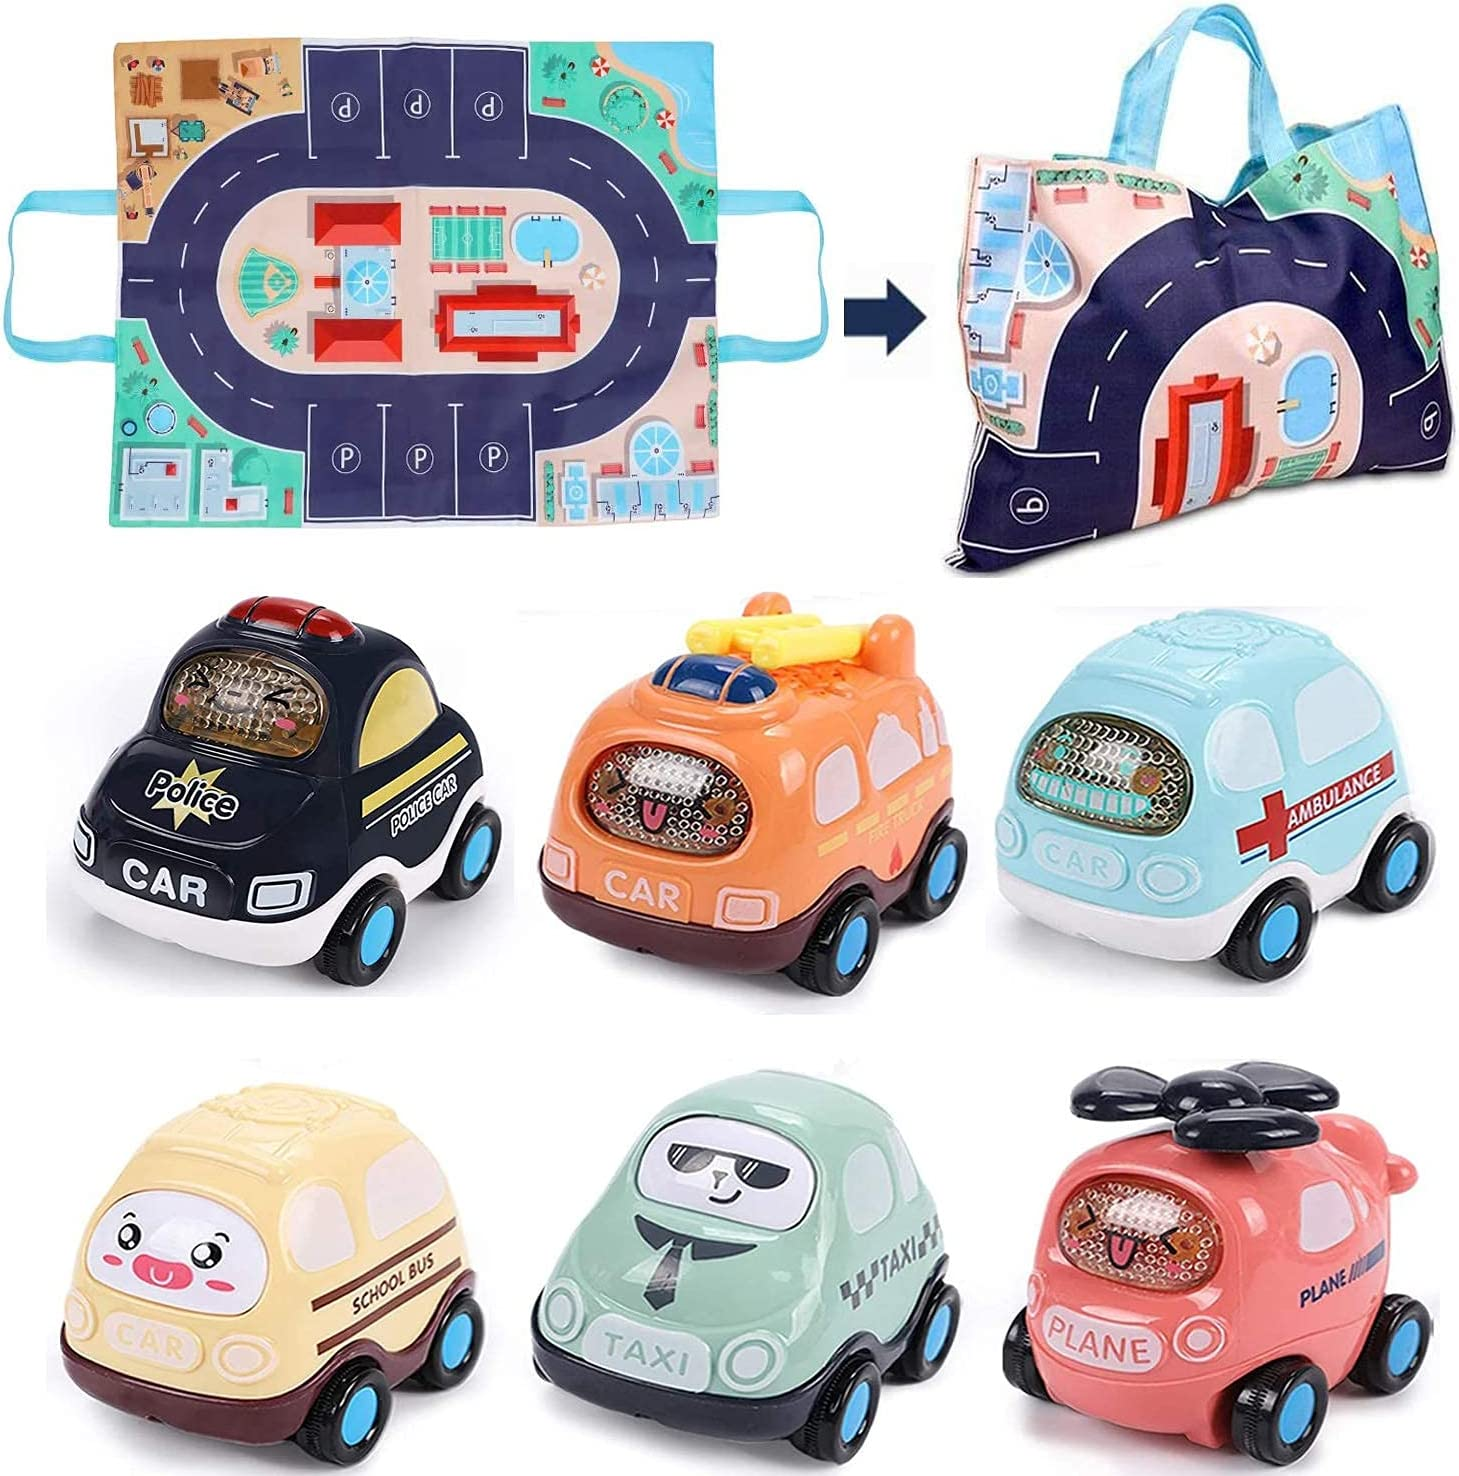 Baby Toy Cars for 1 Year Old Boy Todd Direct store and Vehicles Industry No. Push Go 6PCS